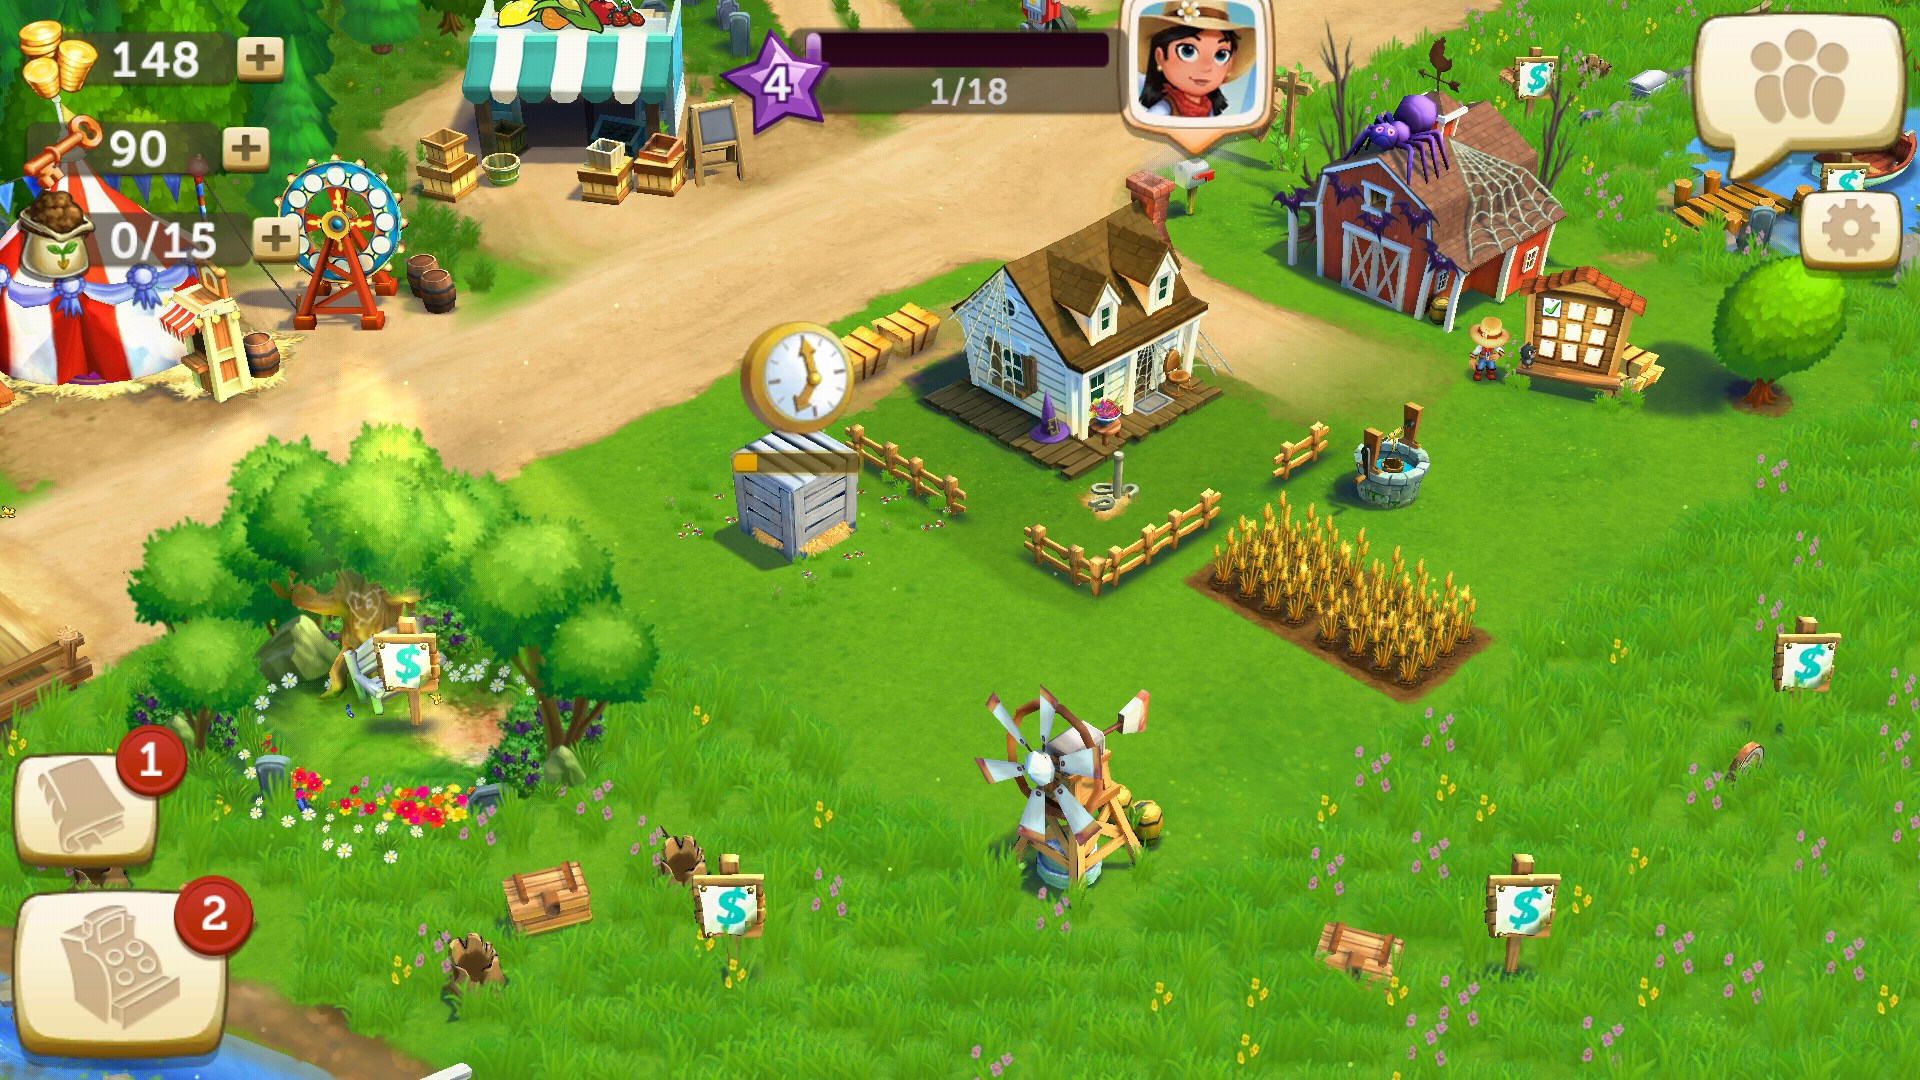 Play Farmville 2 On My Android 4 0 3 Tablet Android App Android  Apps